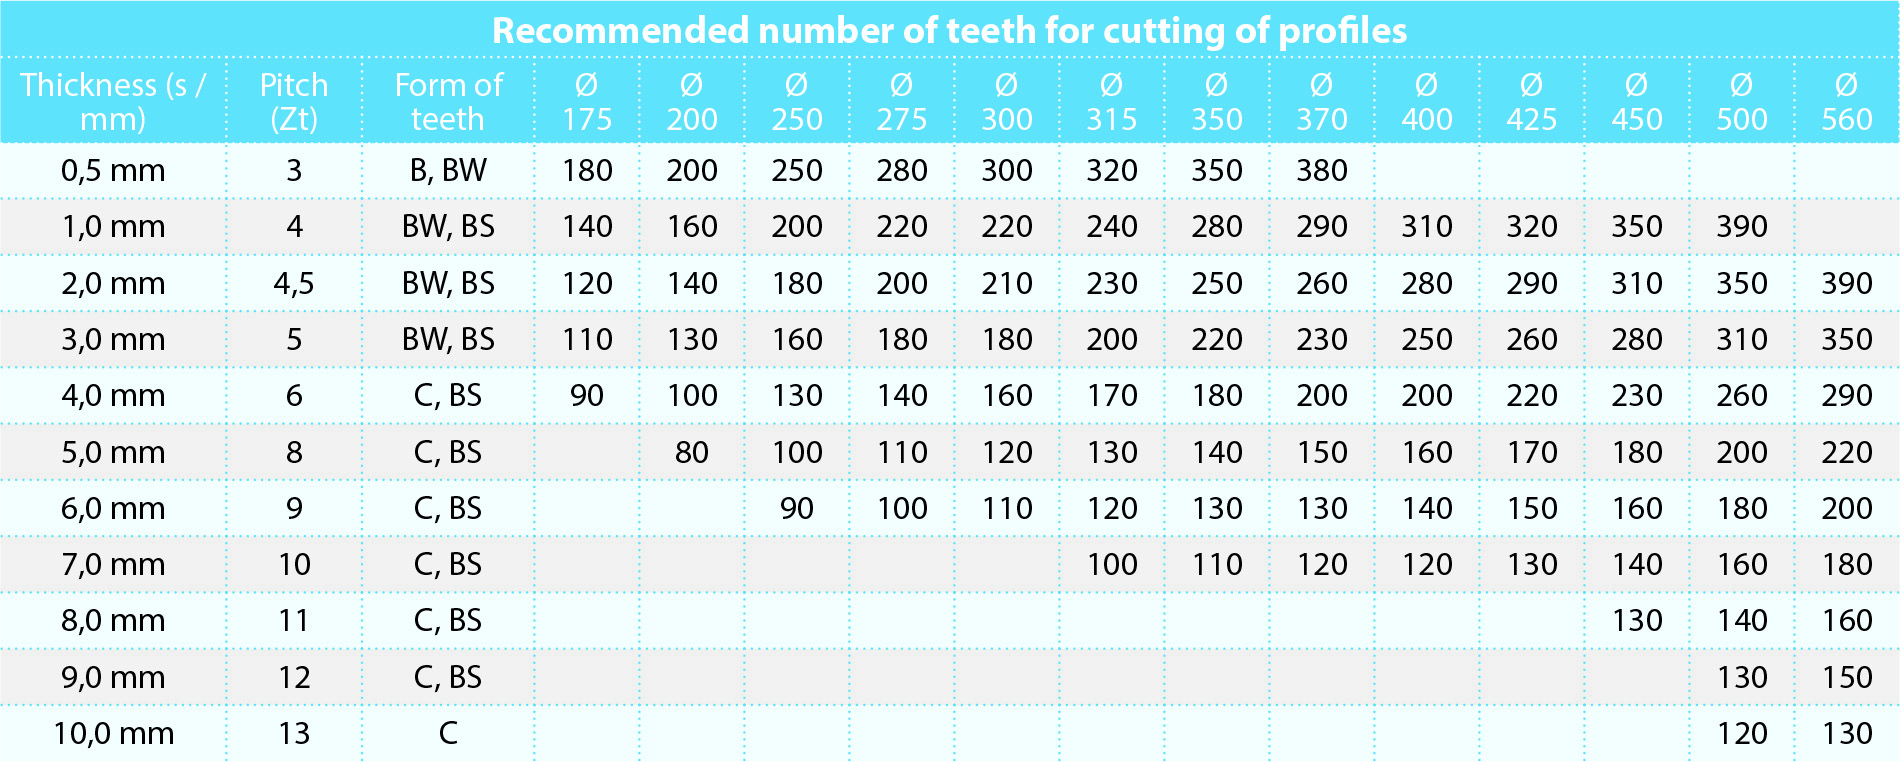 Teeth number + Toof form we recommend for cutting profiles and pipes